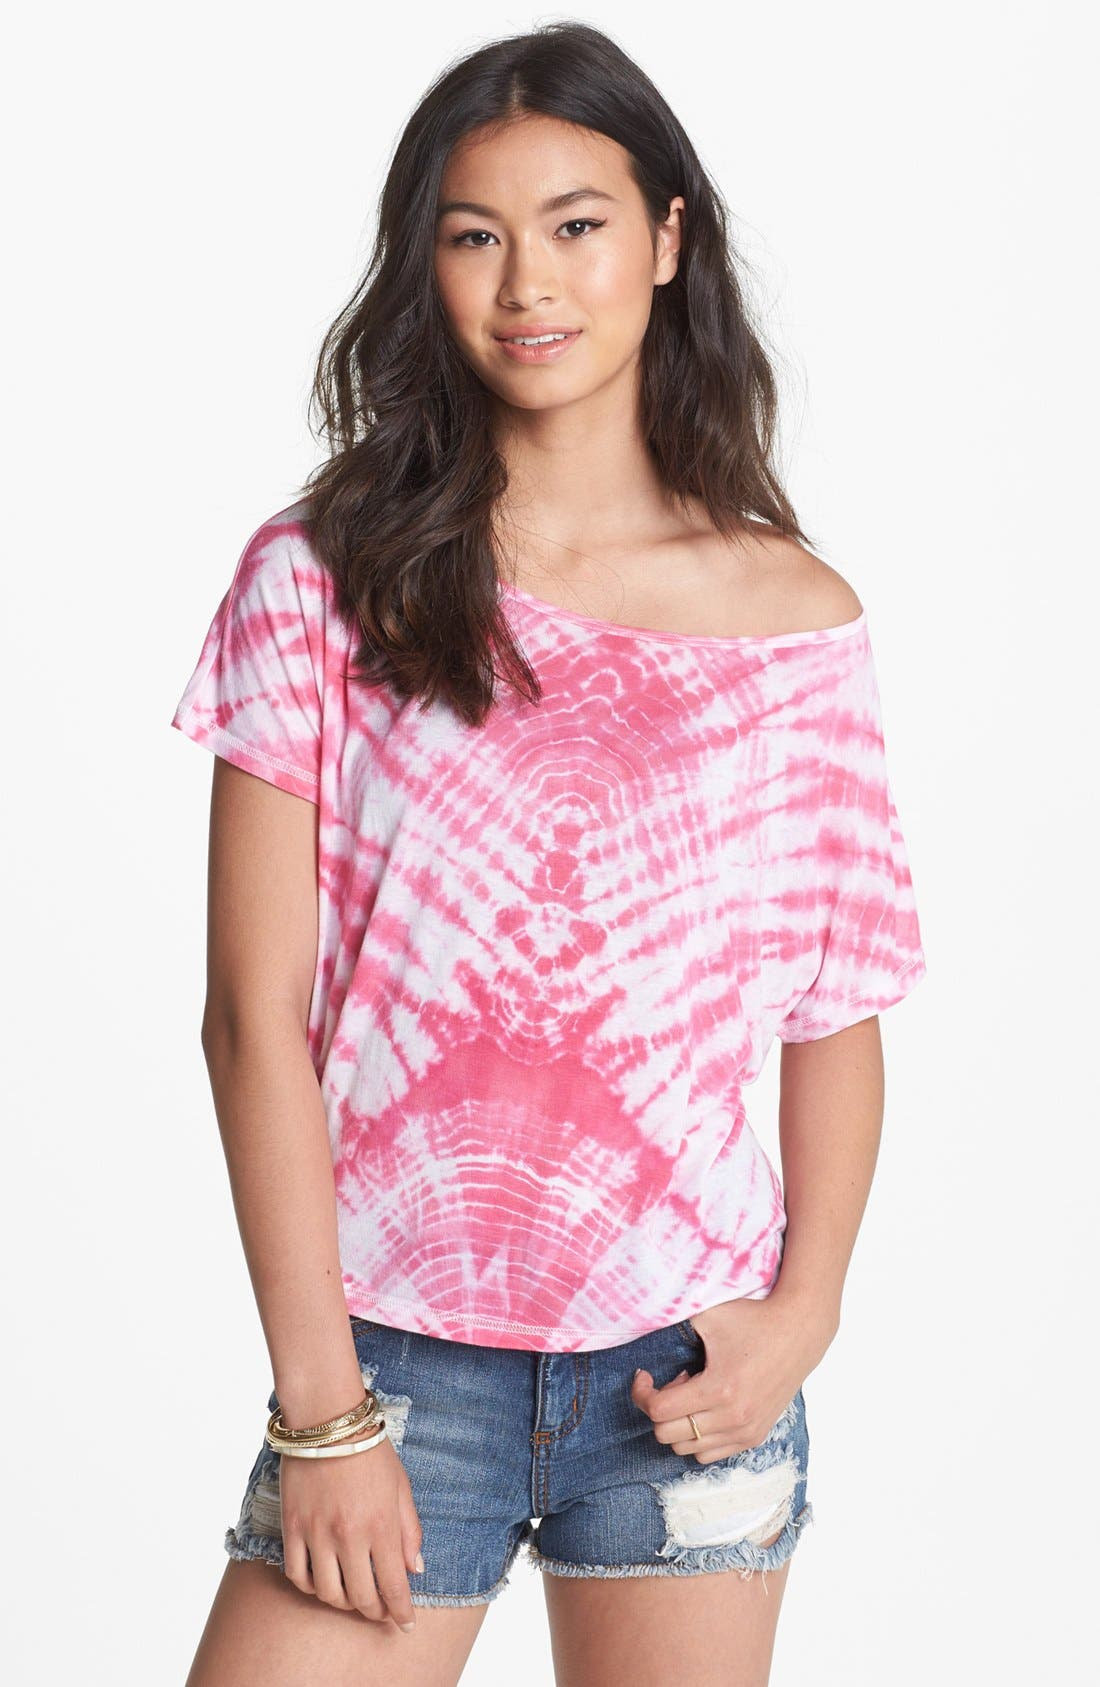 Alternate Image 1 Selected - BP. Tie Dye Wide Neck Tee (Juniors)